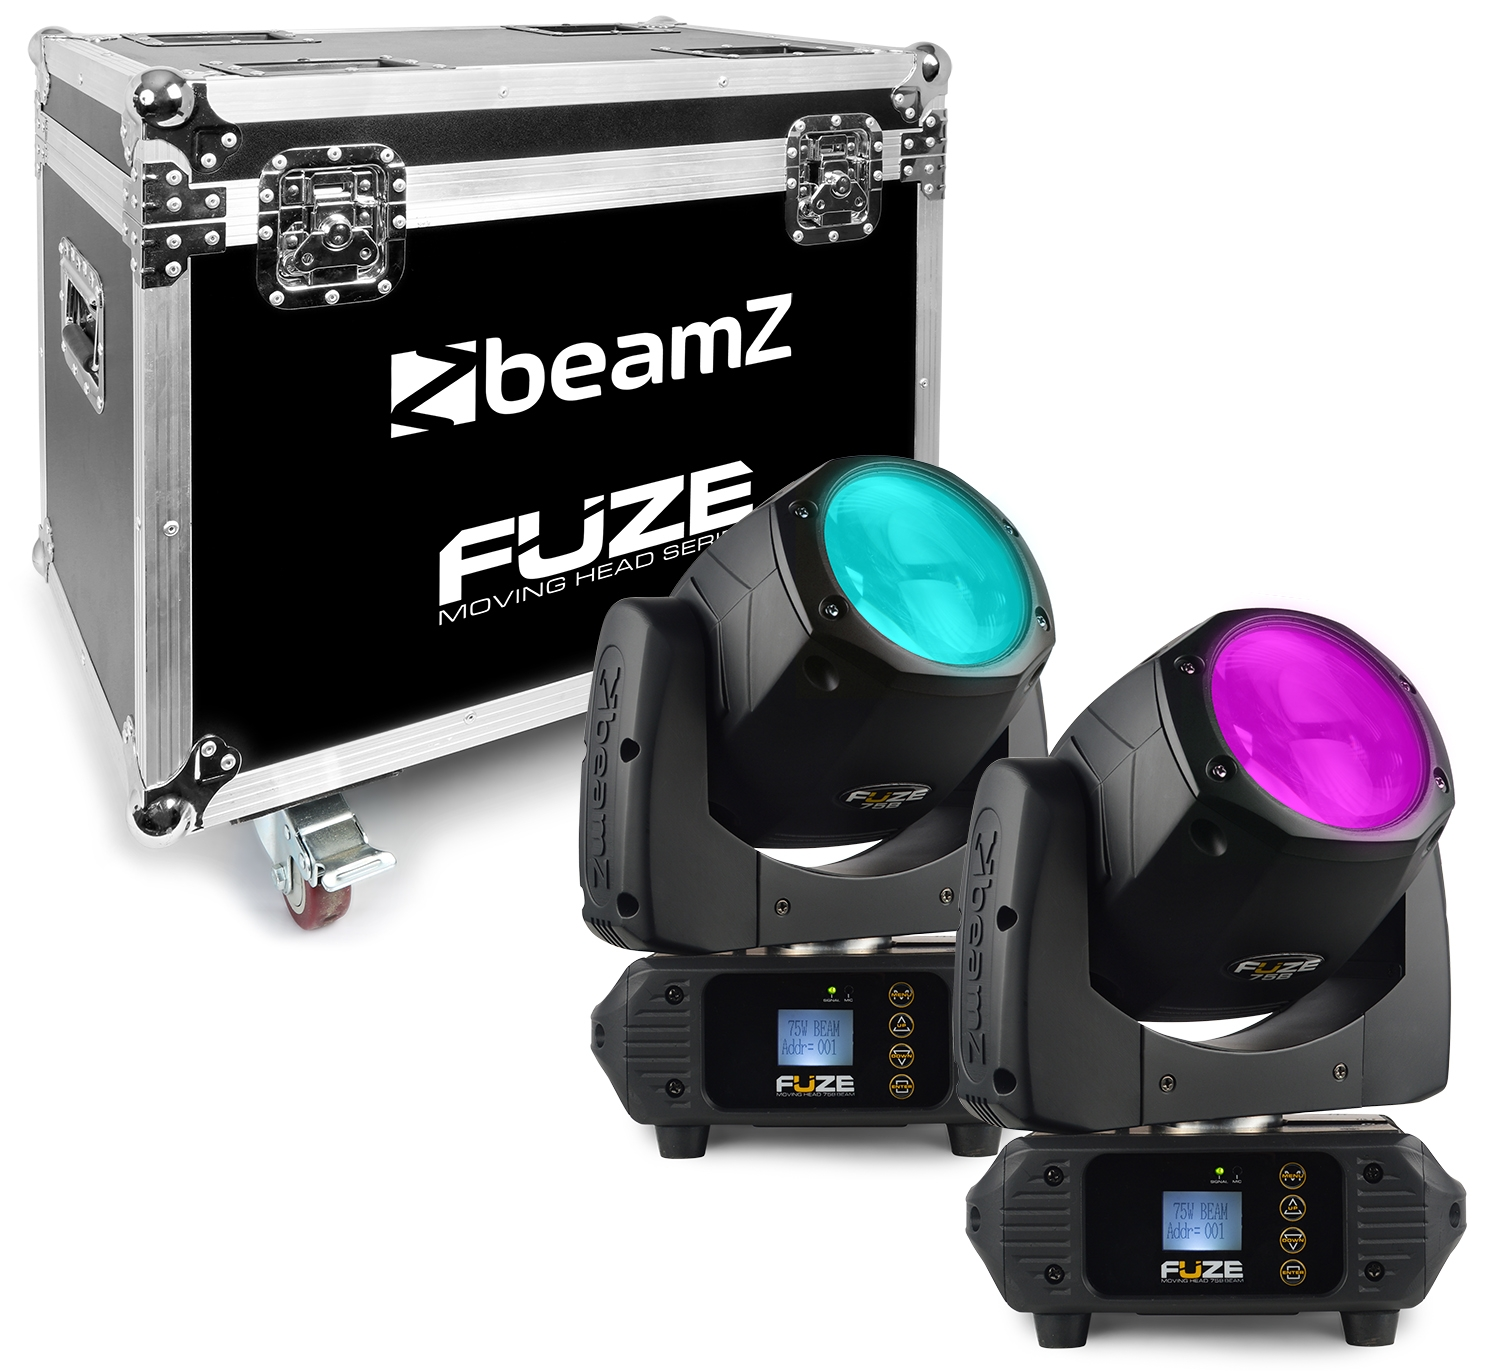 BeamZ Fuze 75B Beam 75W LED Moving Head Sada 2ks s přepravním casem